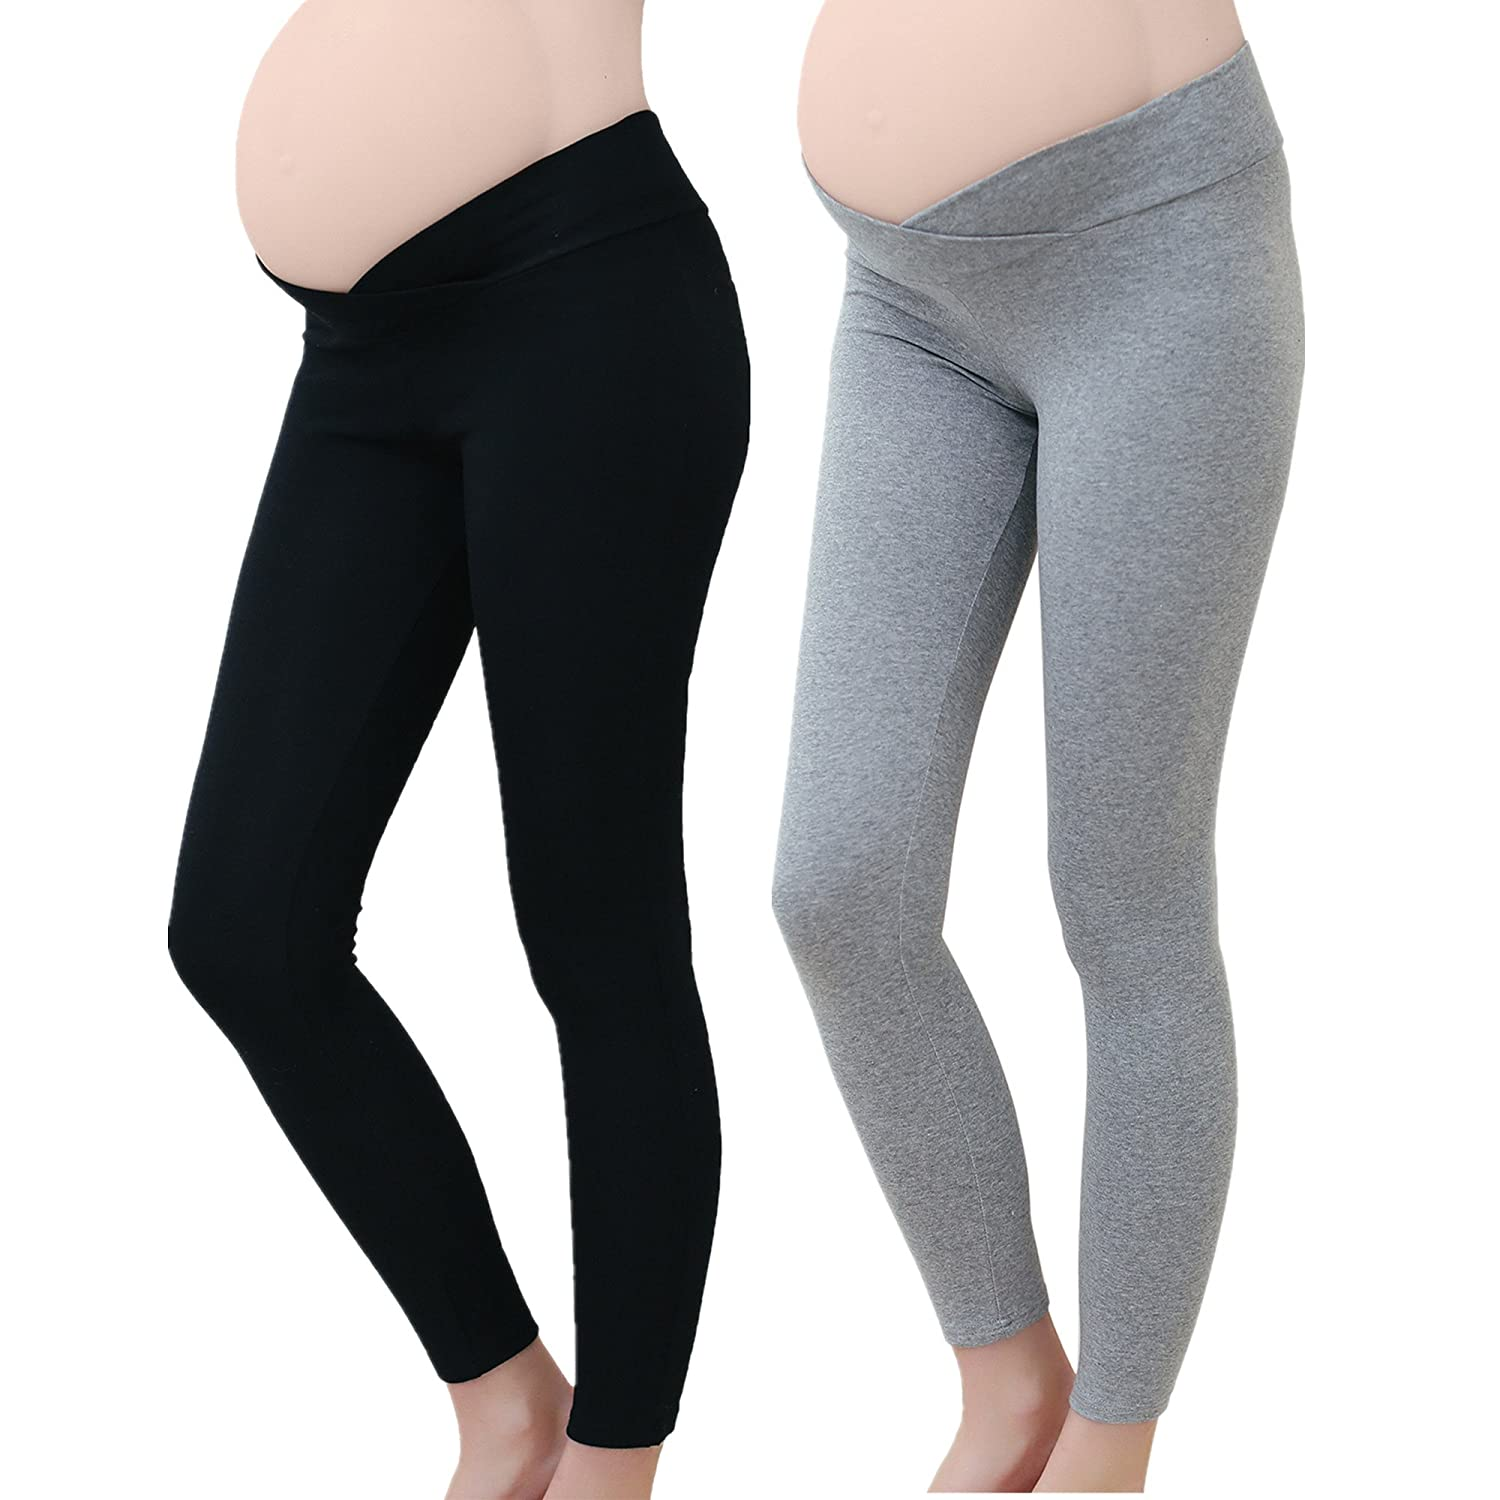 Tremour Maternity Seamless Ankle Length Maternity Pregnancy Under The Bump Legging K128